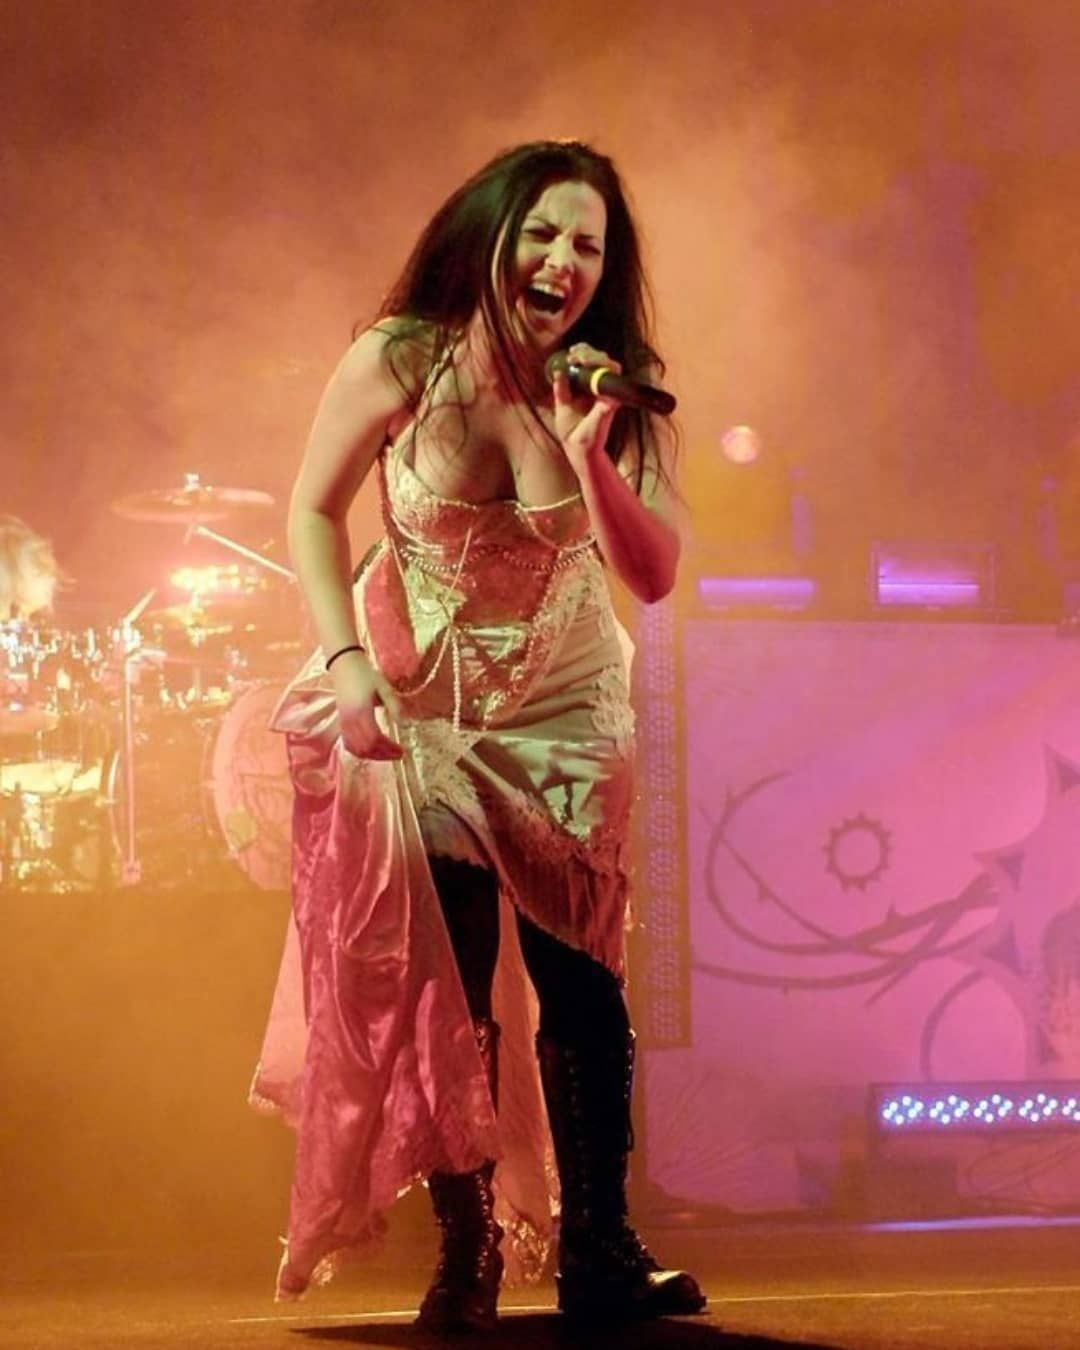 Pin On Amy Lee